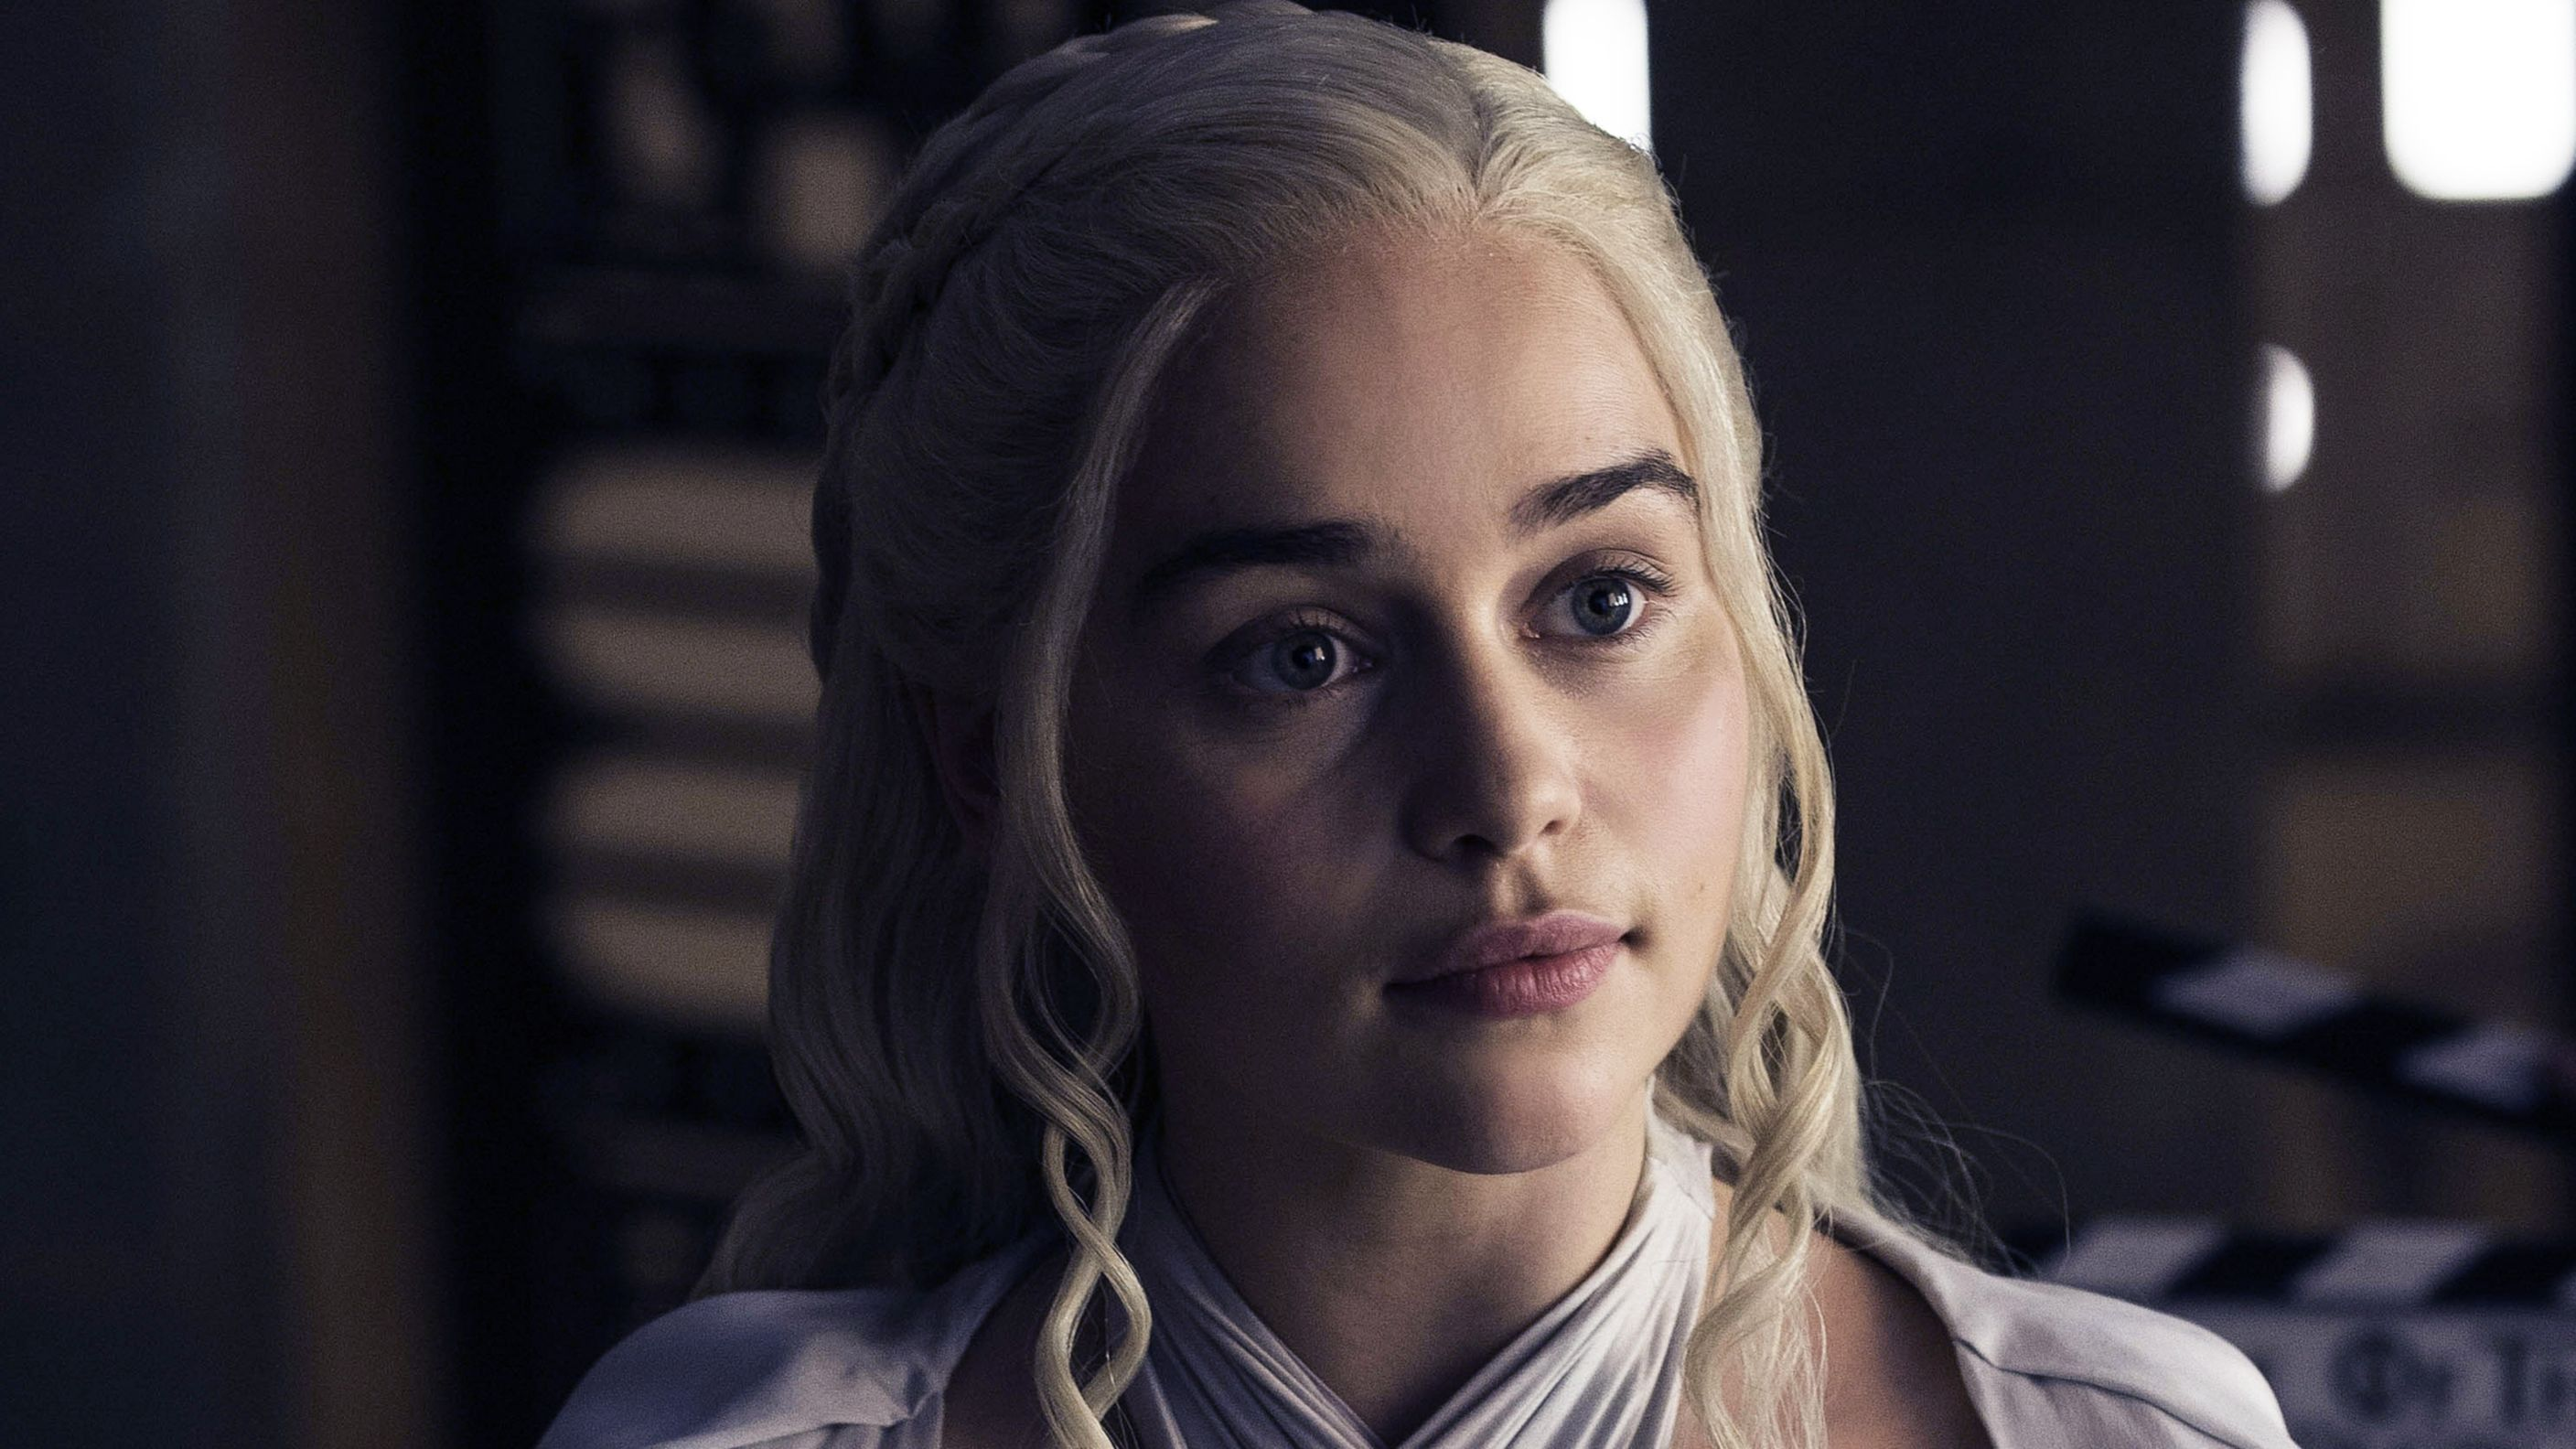 Download free HD Emilia Clarke Daenerys Stormborn HD Wallpaper, image